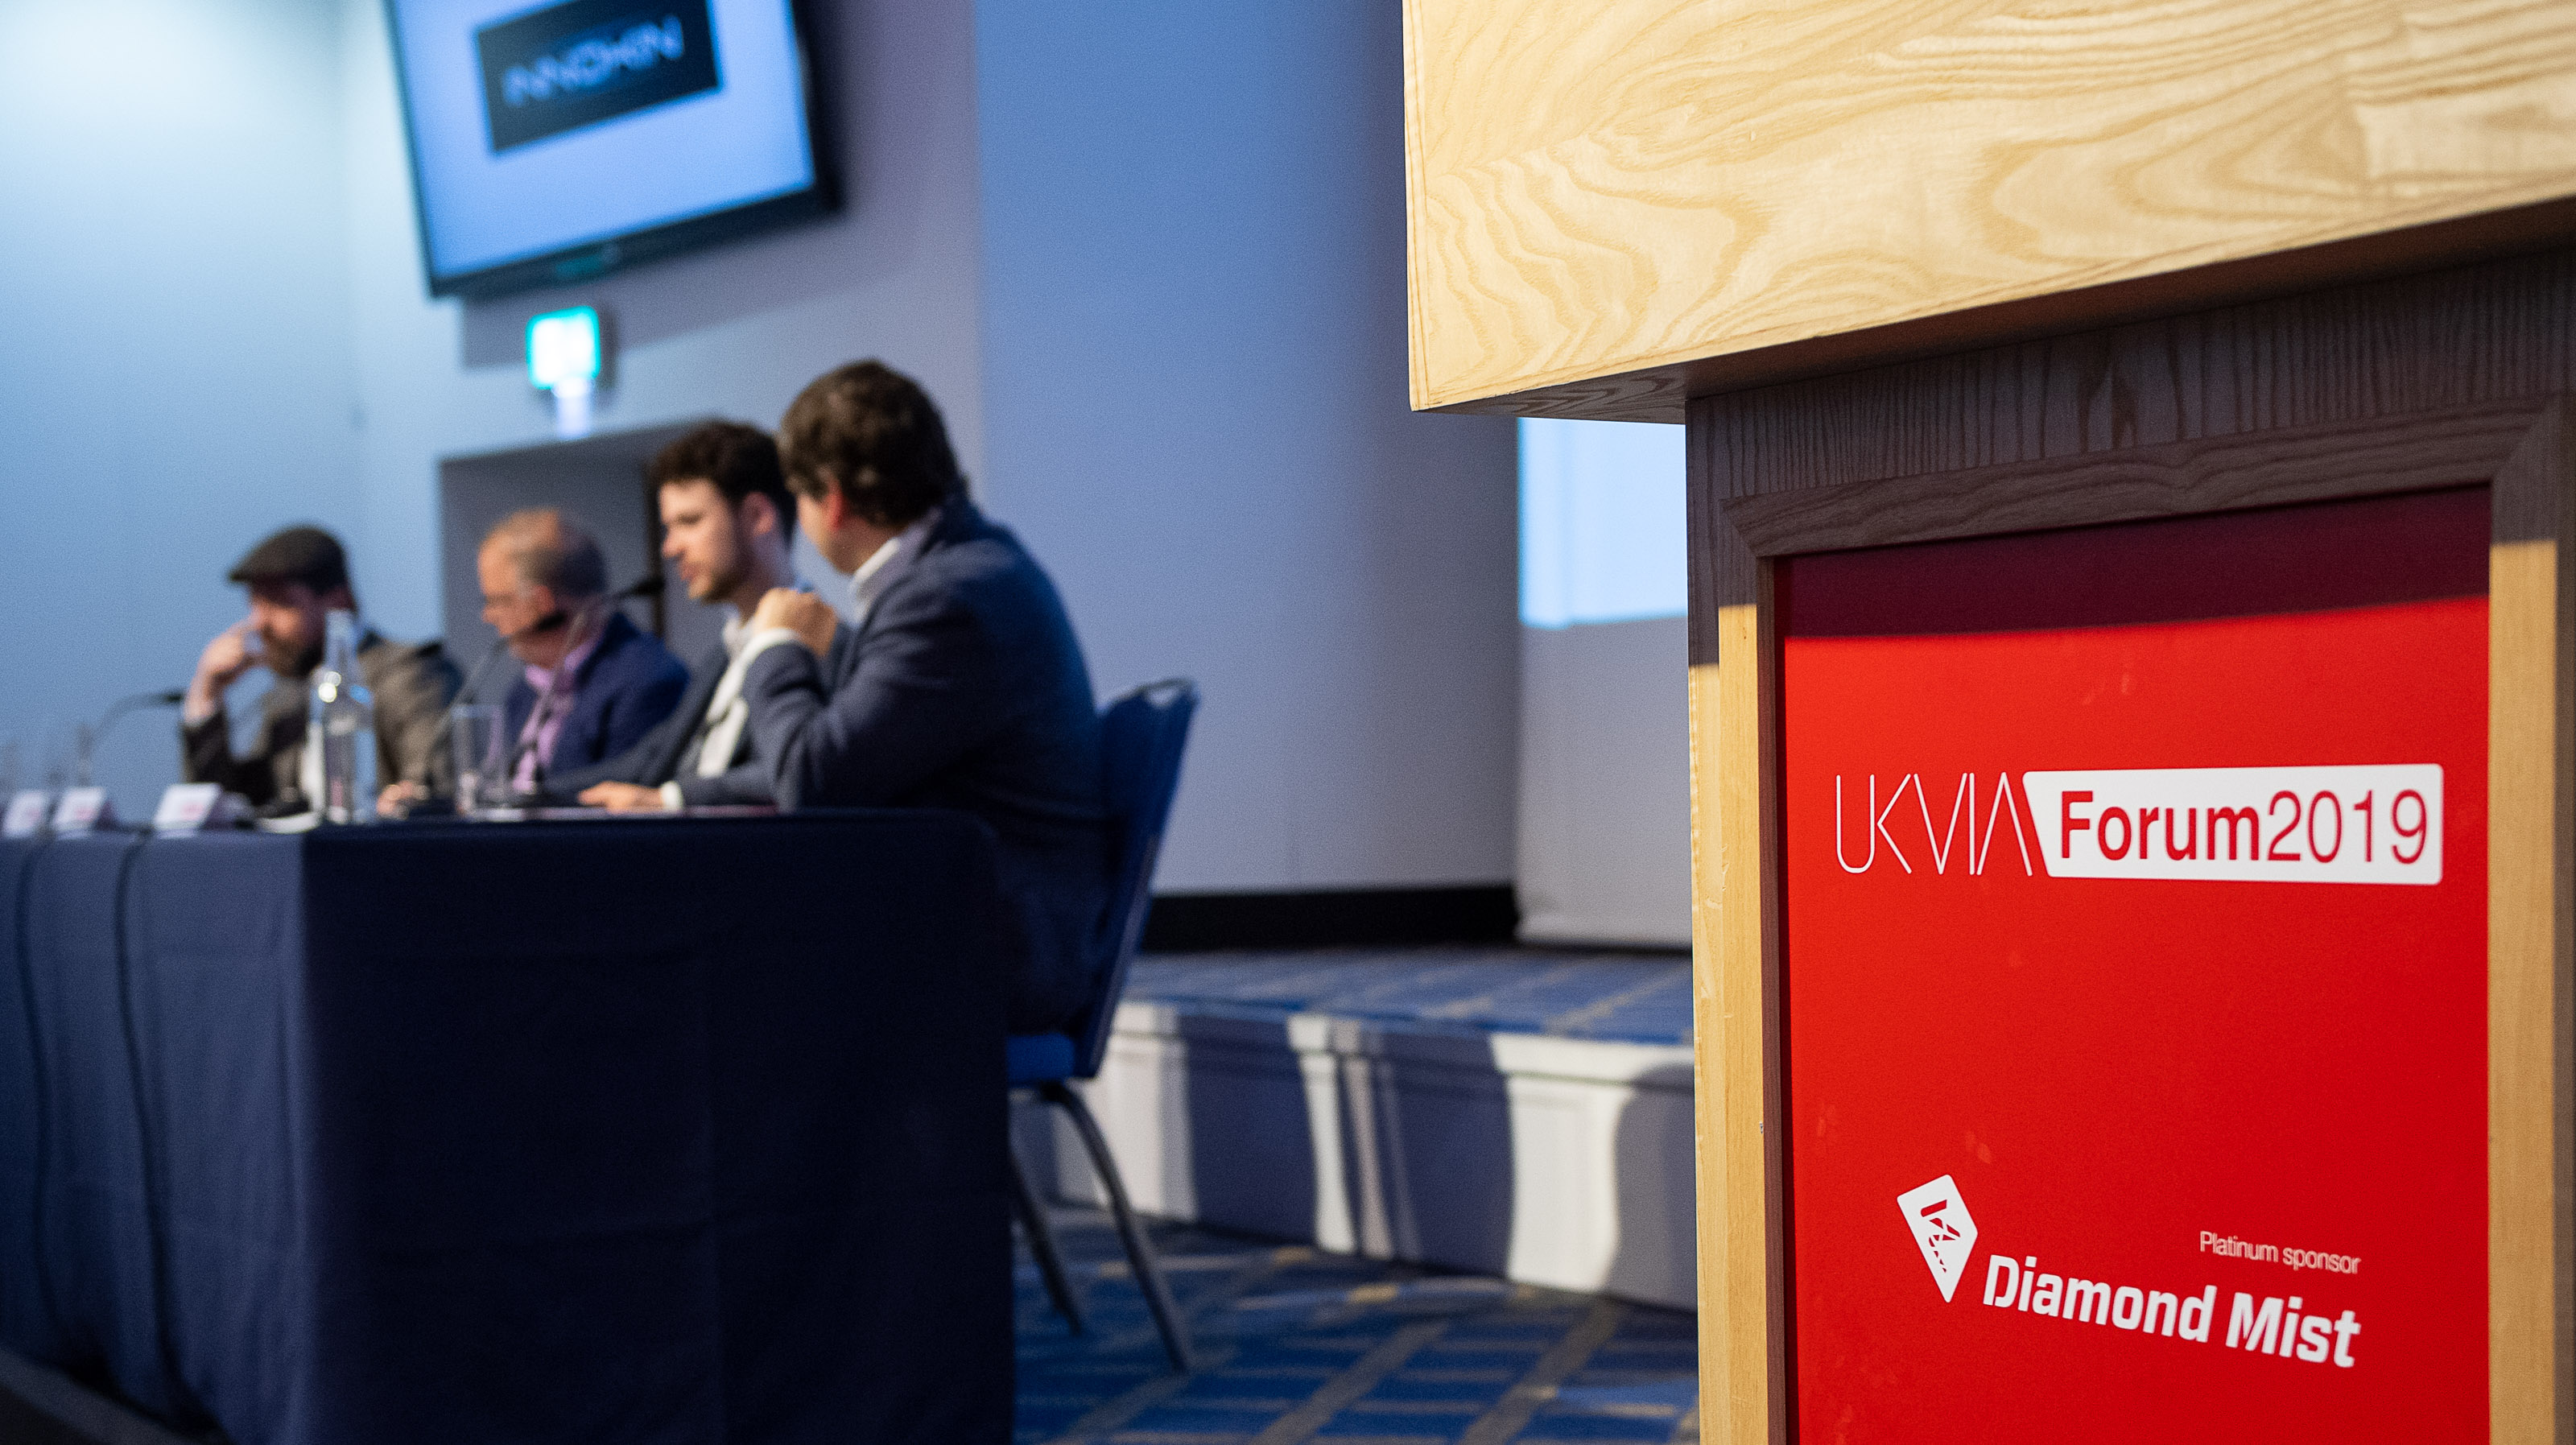 The UKVIA Forum 2019 looks to seize the public health prize of vaping.